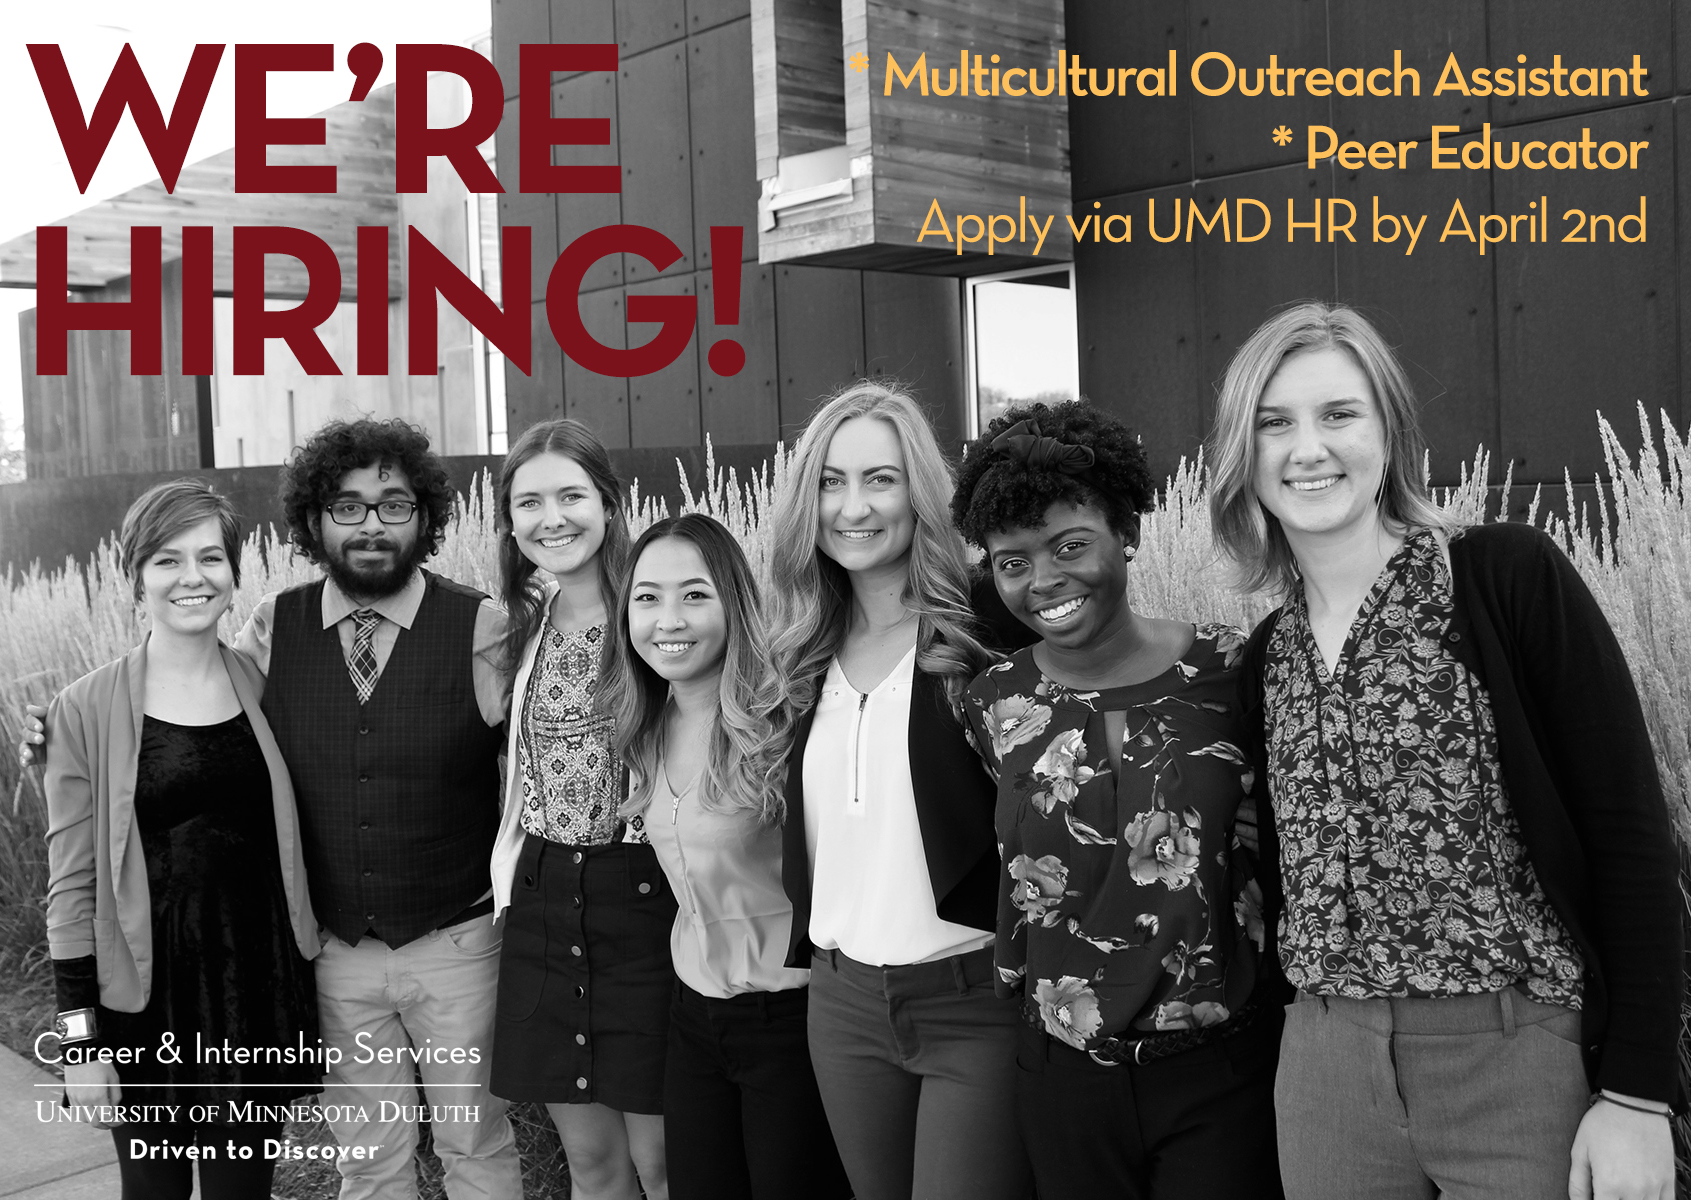 We're hiring! Multicultural Outreach Assistant and Peer Educator. Apply via UMD HR by April 2nd.